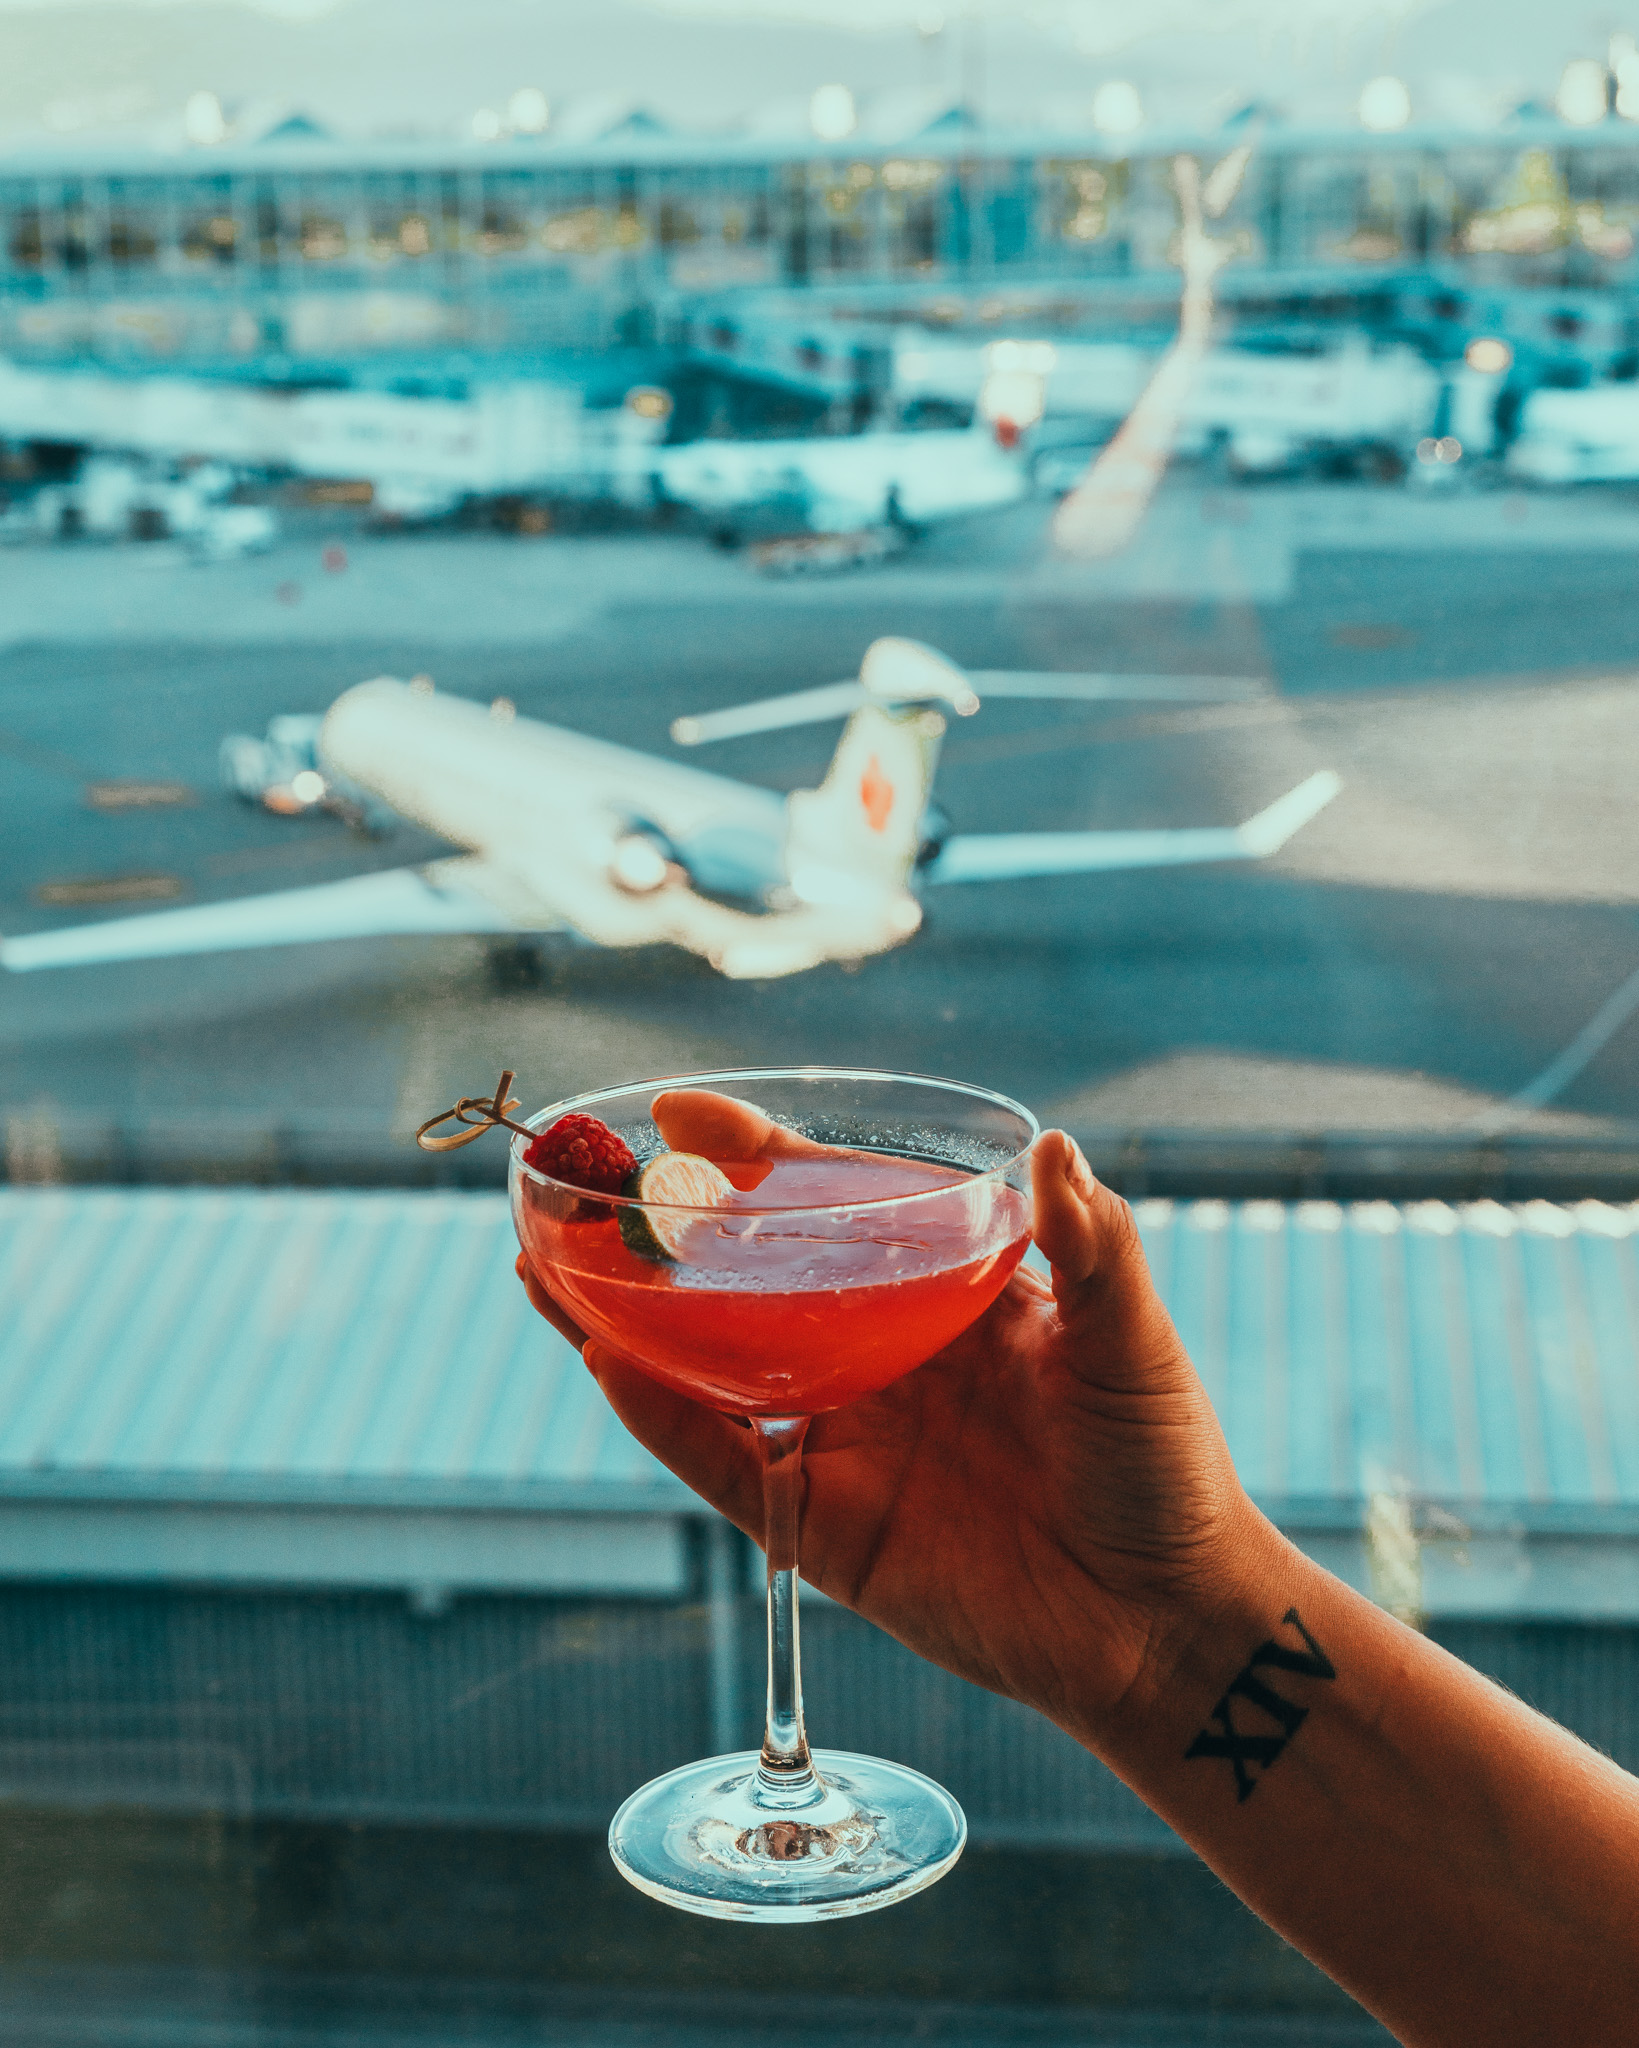 Jetside Bar cocktails at Fairmont Vancouver Airport // The Quick Guide to Visiting Vancouver, BC #readysetjetset